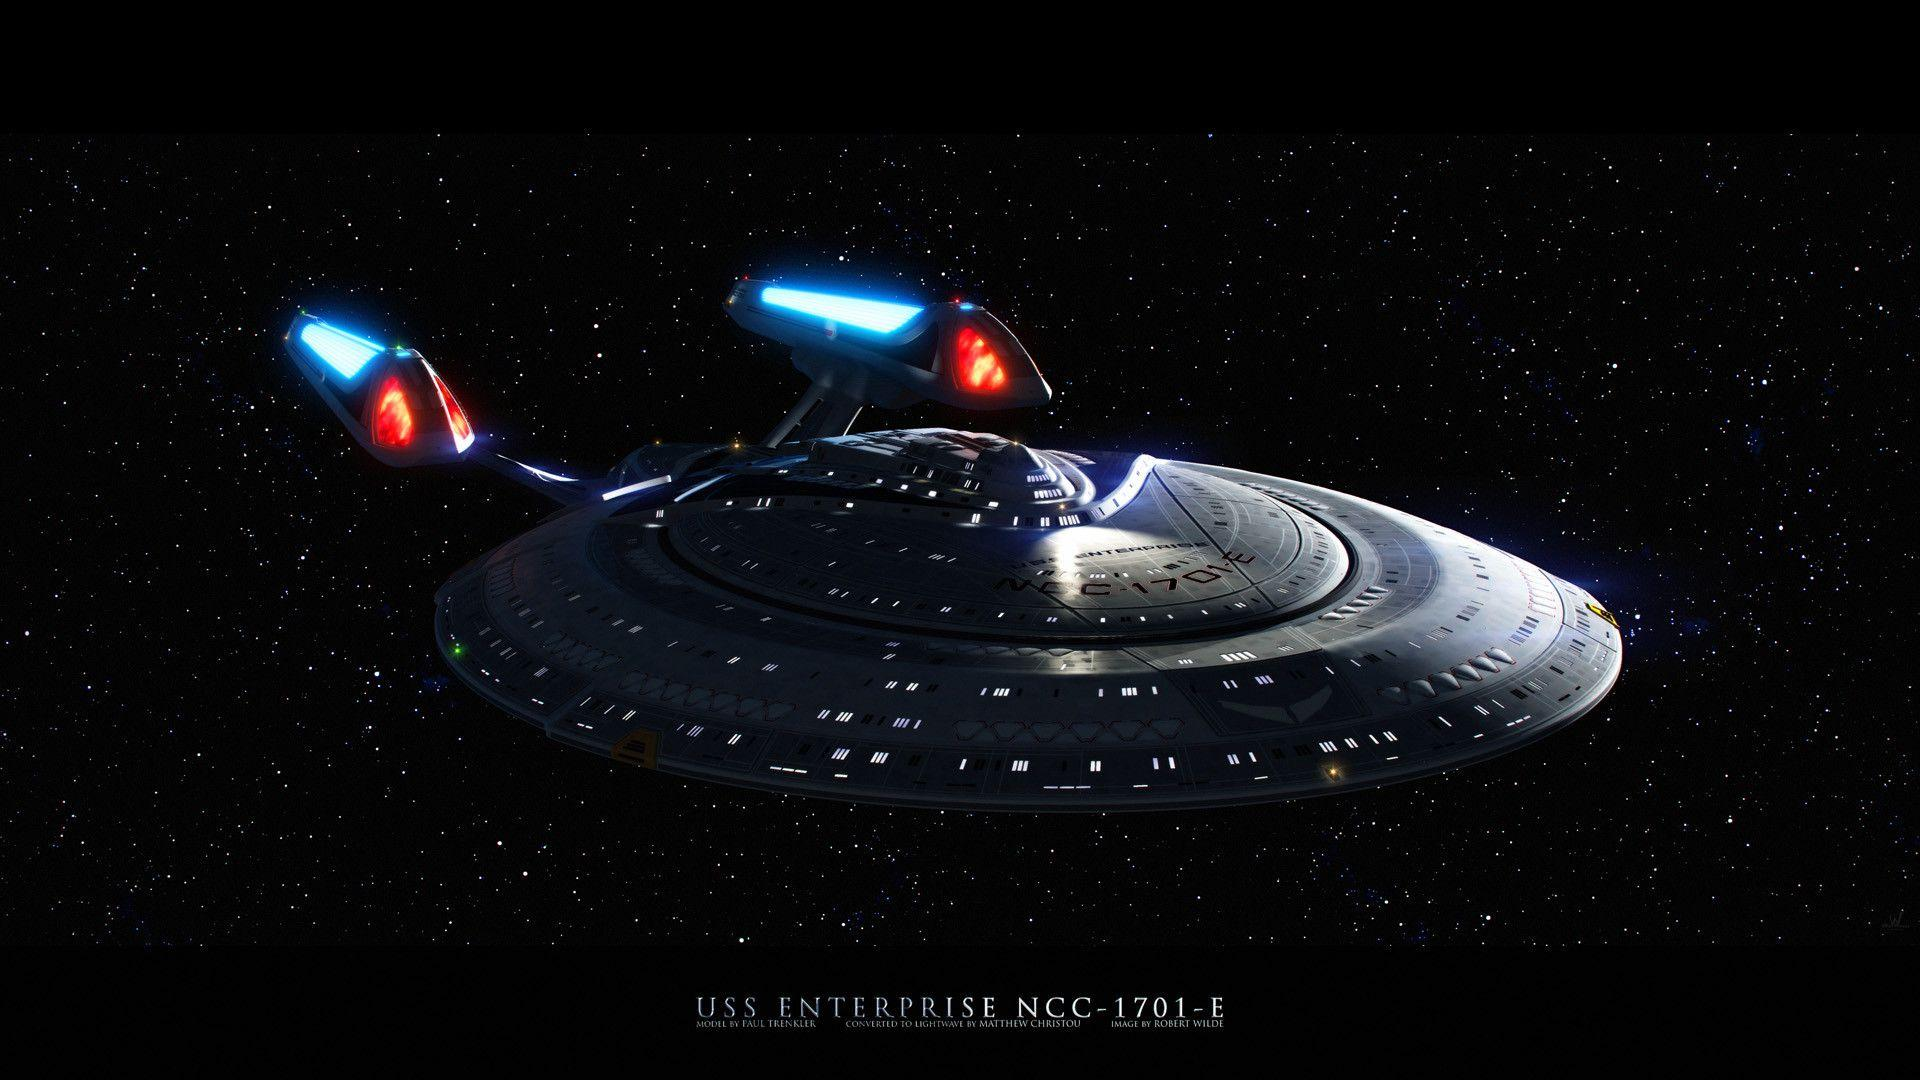 Top Star Trek Enterprise Wallpapers - Wallpaper Cave HR64